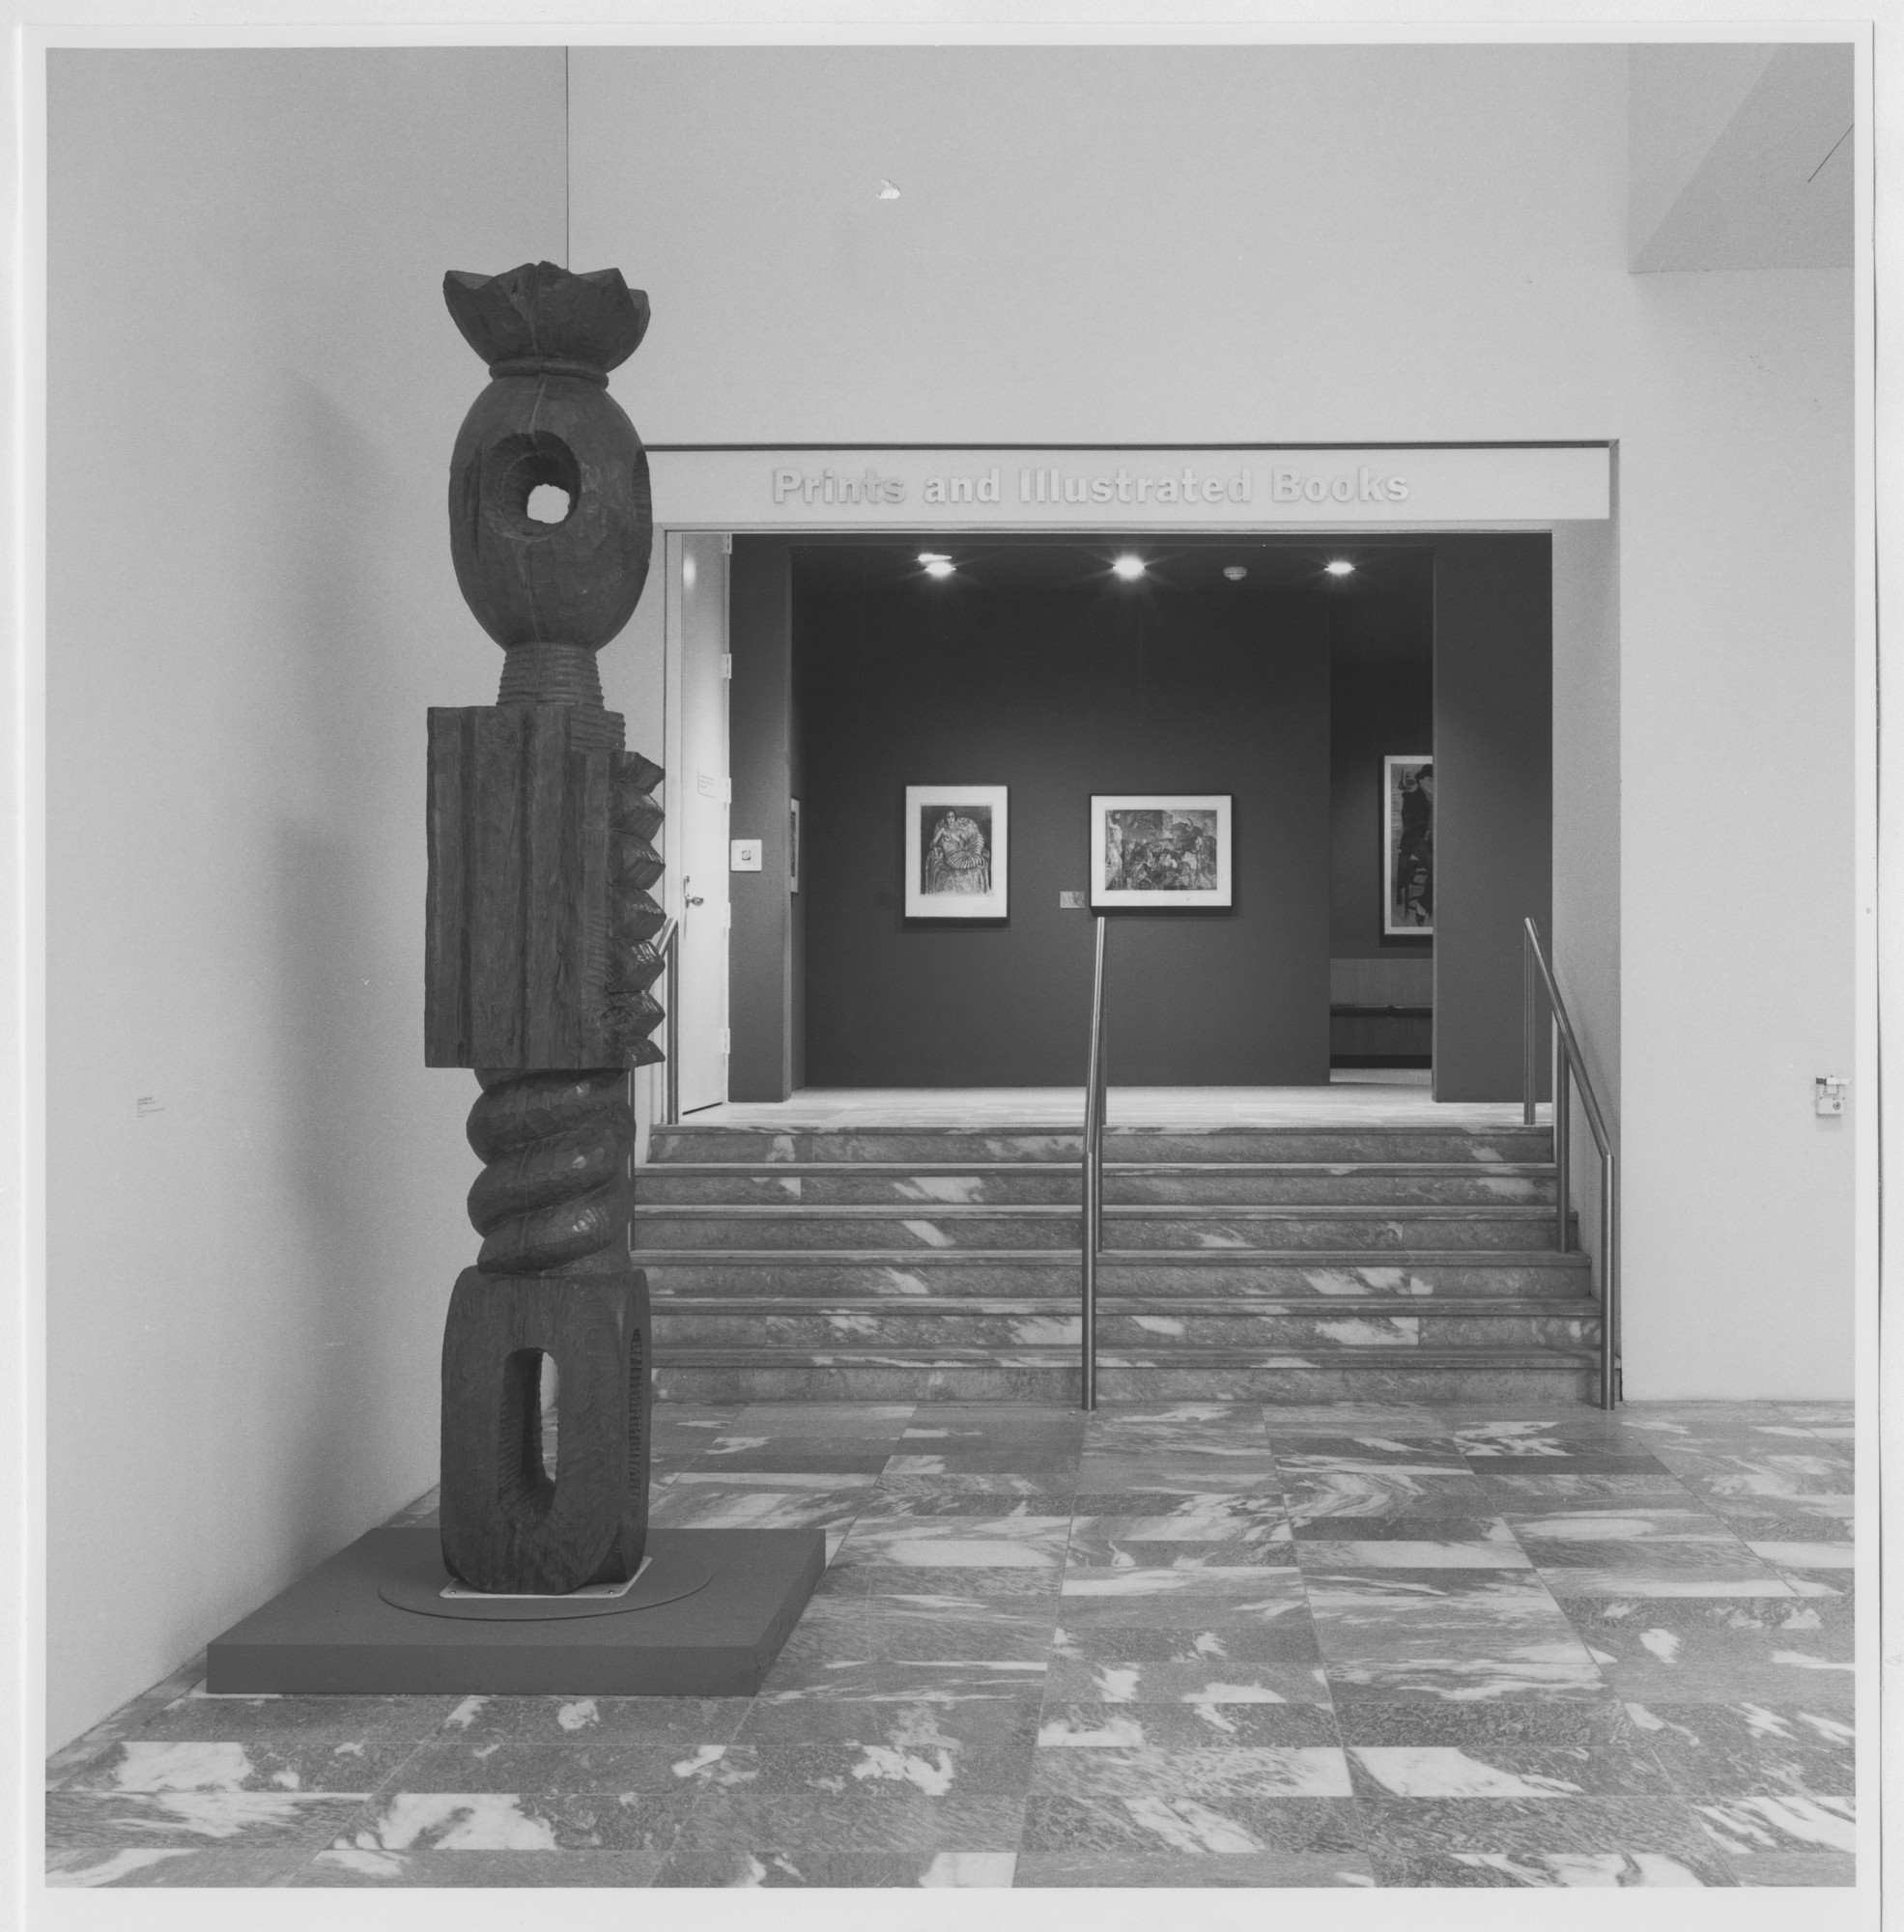 "Installation view of the exhibition, ""Selections from the Permanent Collection, Prints"" May 17, 1984 [unknown closing date]. Photographic Archive. The Museum of Modern Art Archives, New York. IN1374.1. Photograph by Mali Olatunji."